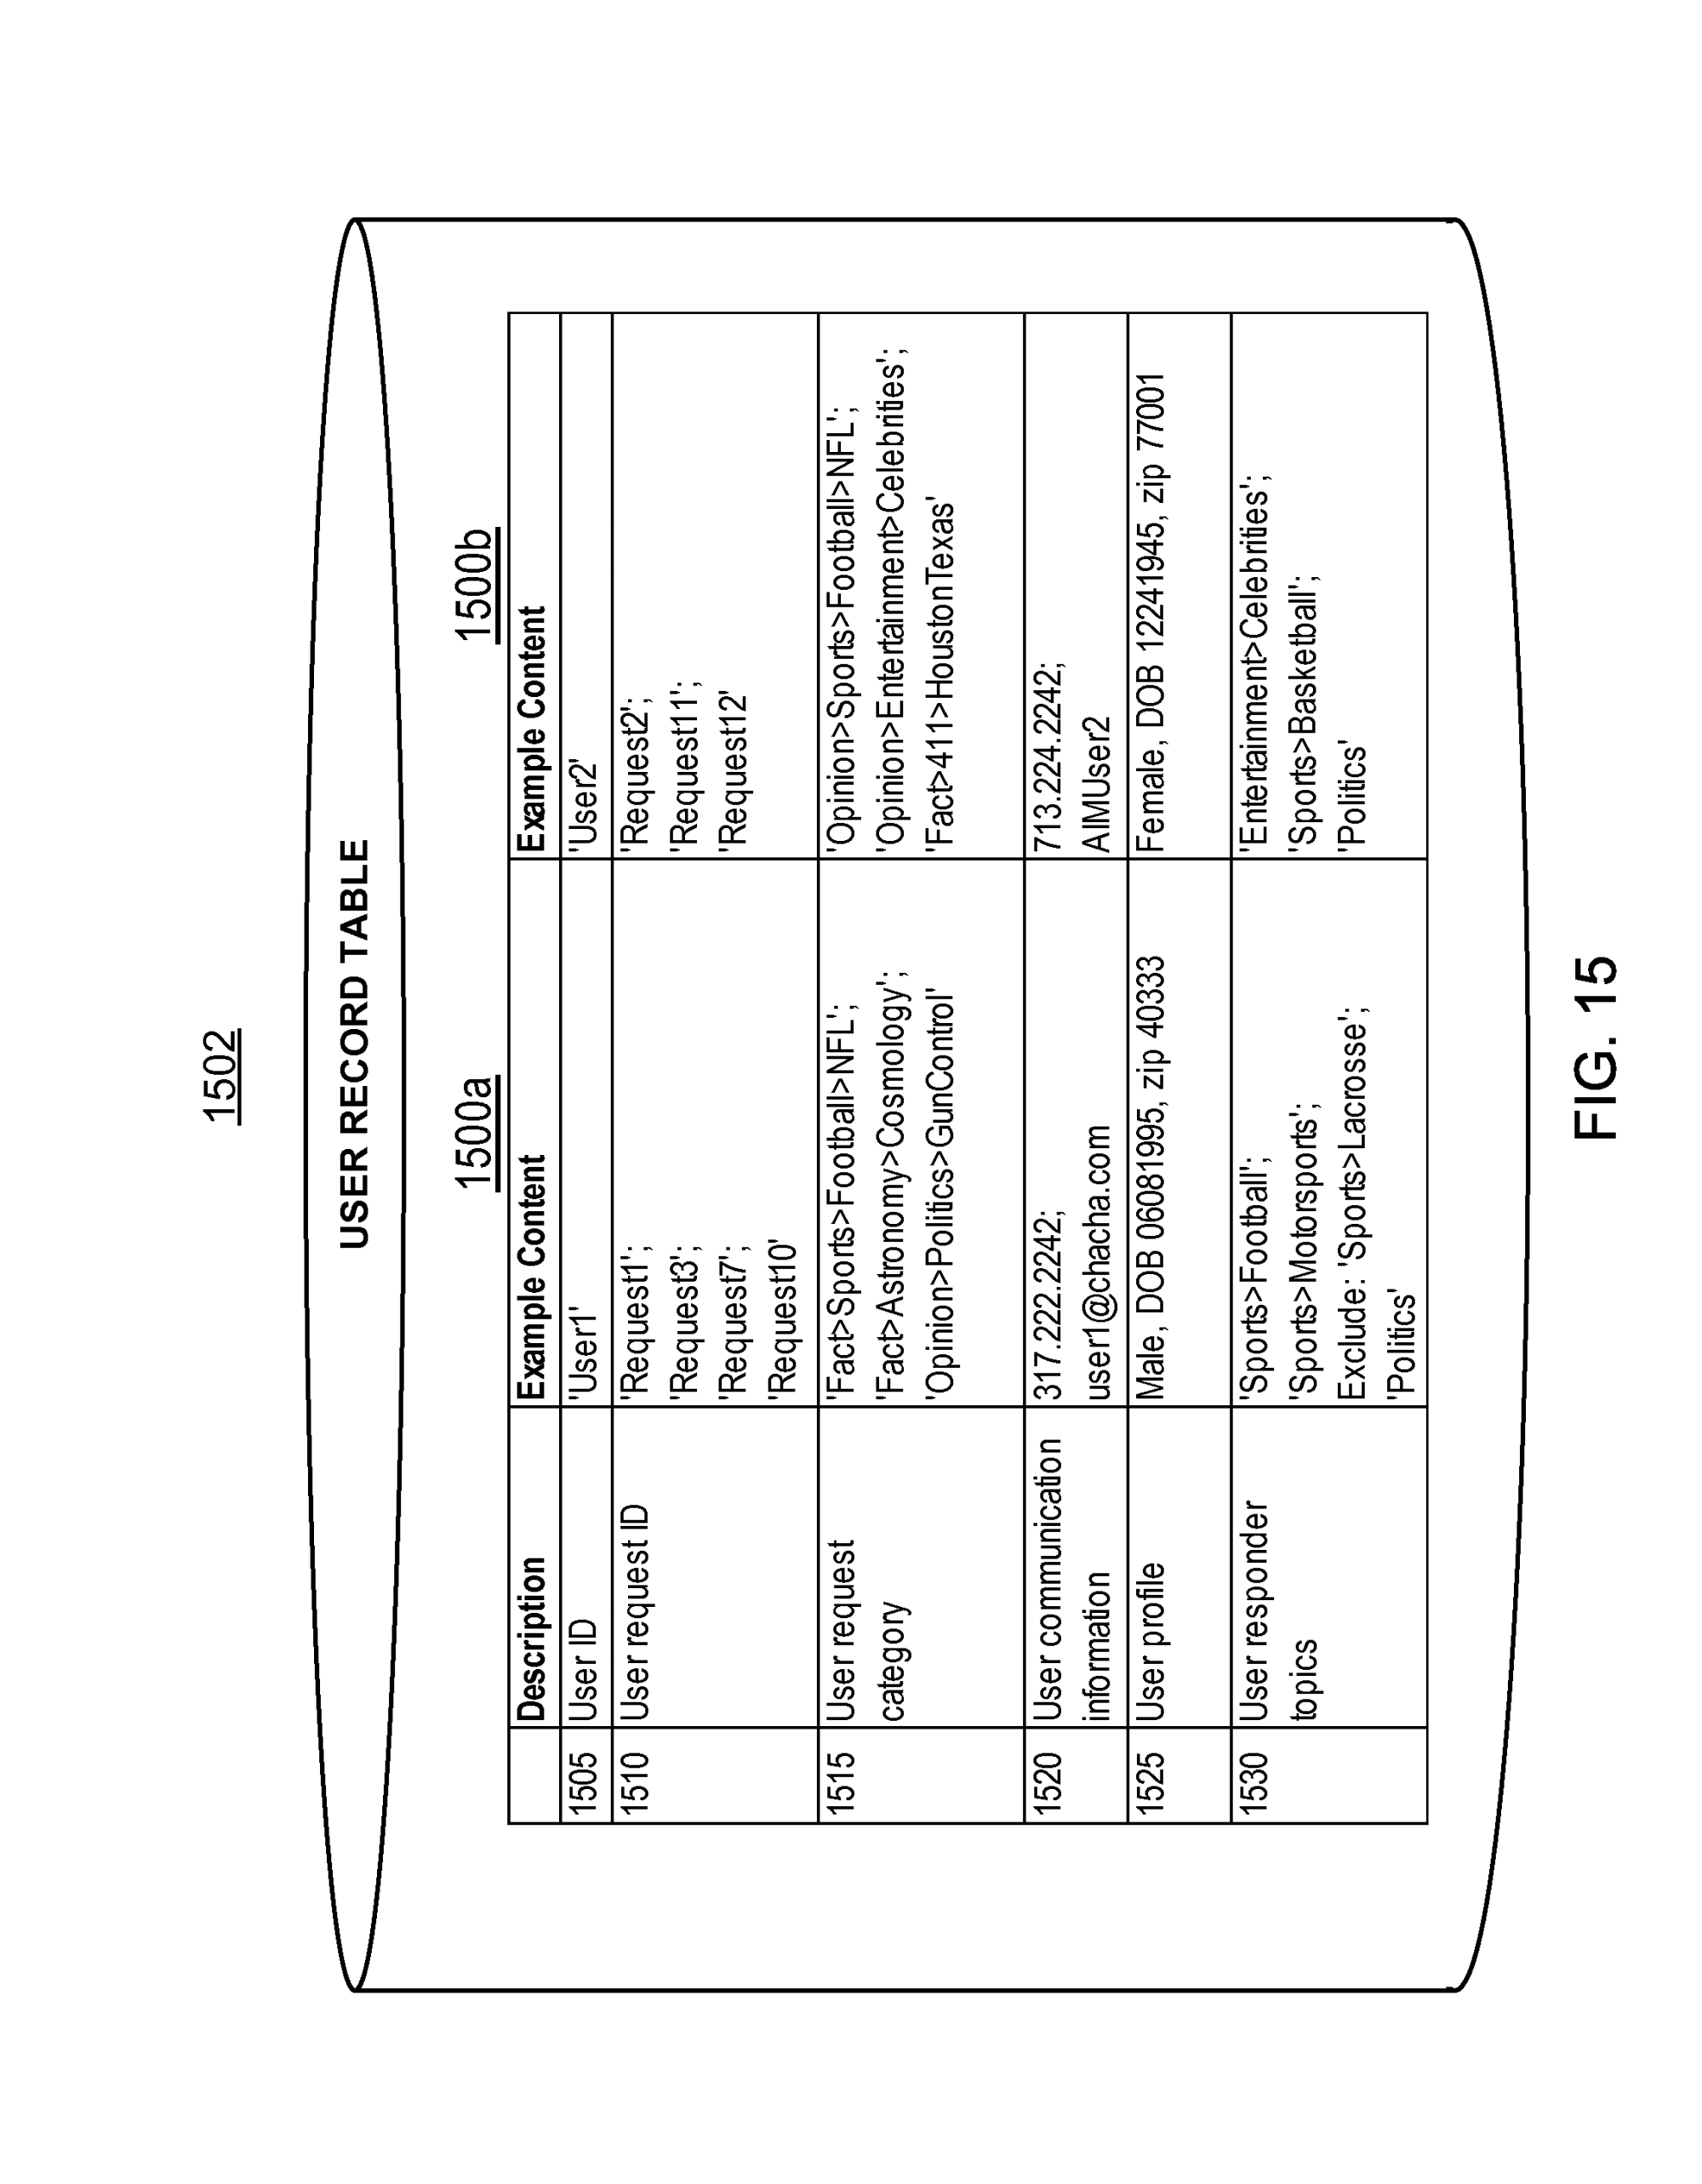 hight resolution of us20140310614a1 method and system of increasing user interaction google patents